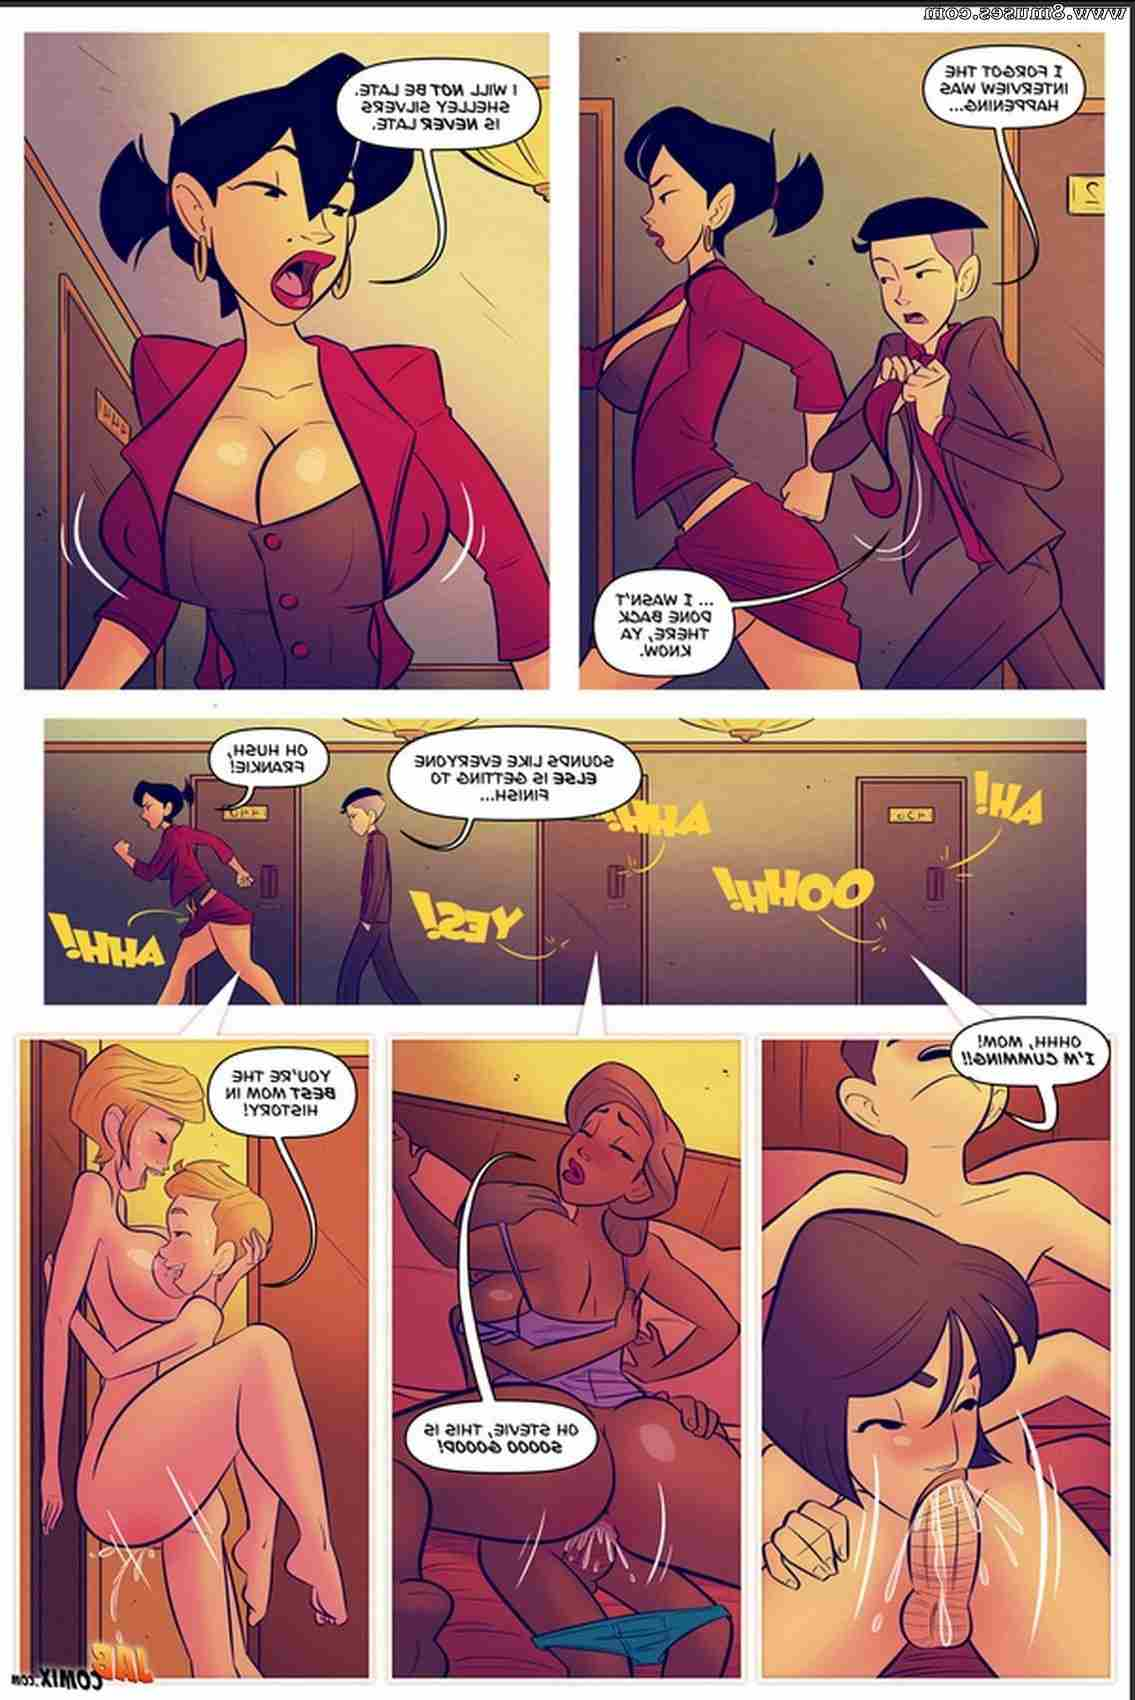 JAB-Comics/My-Mom-The-Book-Tour-Star My_Mom_-_The_Book_Tour_Star__8muses_-_Sex_and_Porn_Comics_19.jpg